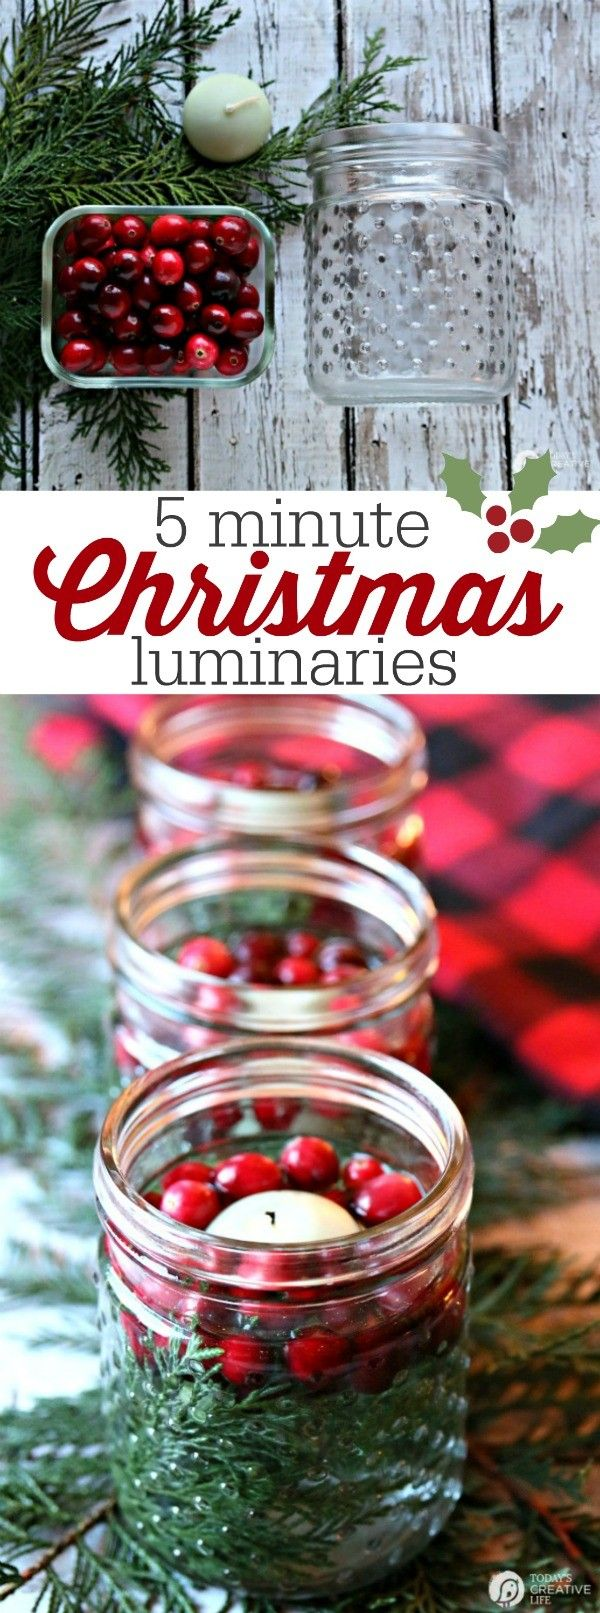 36 impressive christmas table centerpieces decoholic - 5 Minute Cranberry Cedar Christmas Luminaries Holiday Tablesholiday Partiesholiday Ideaschristmas